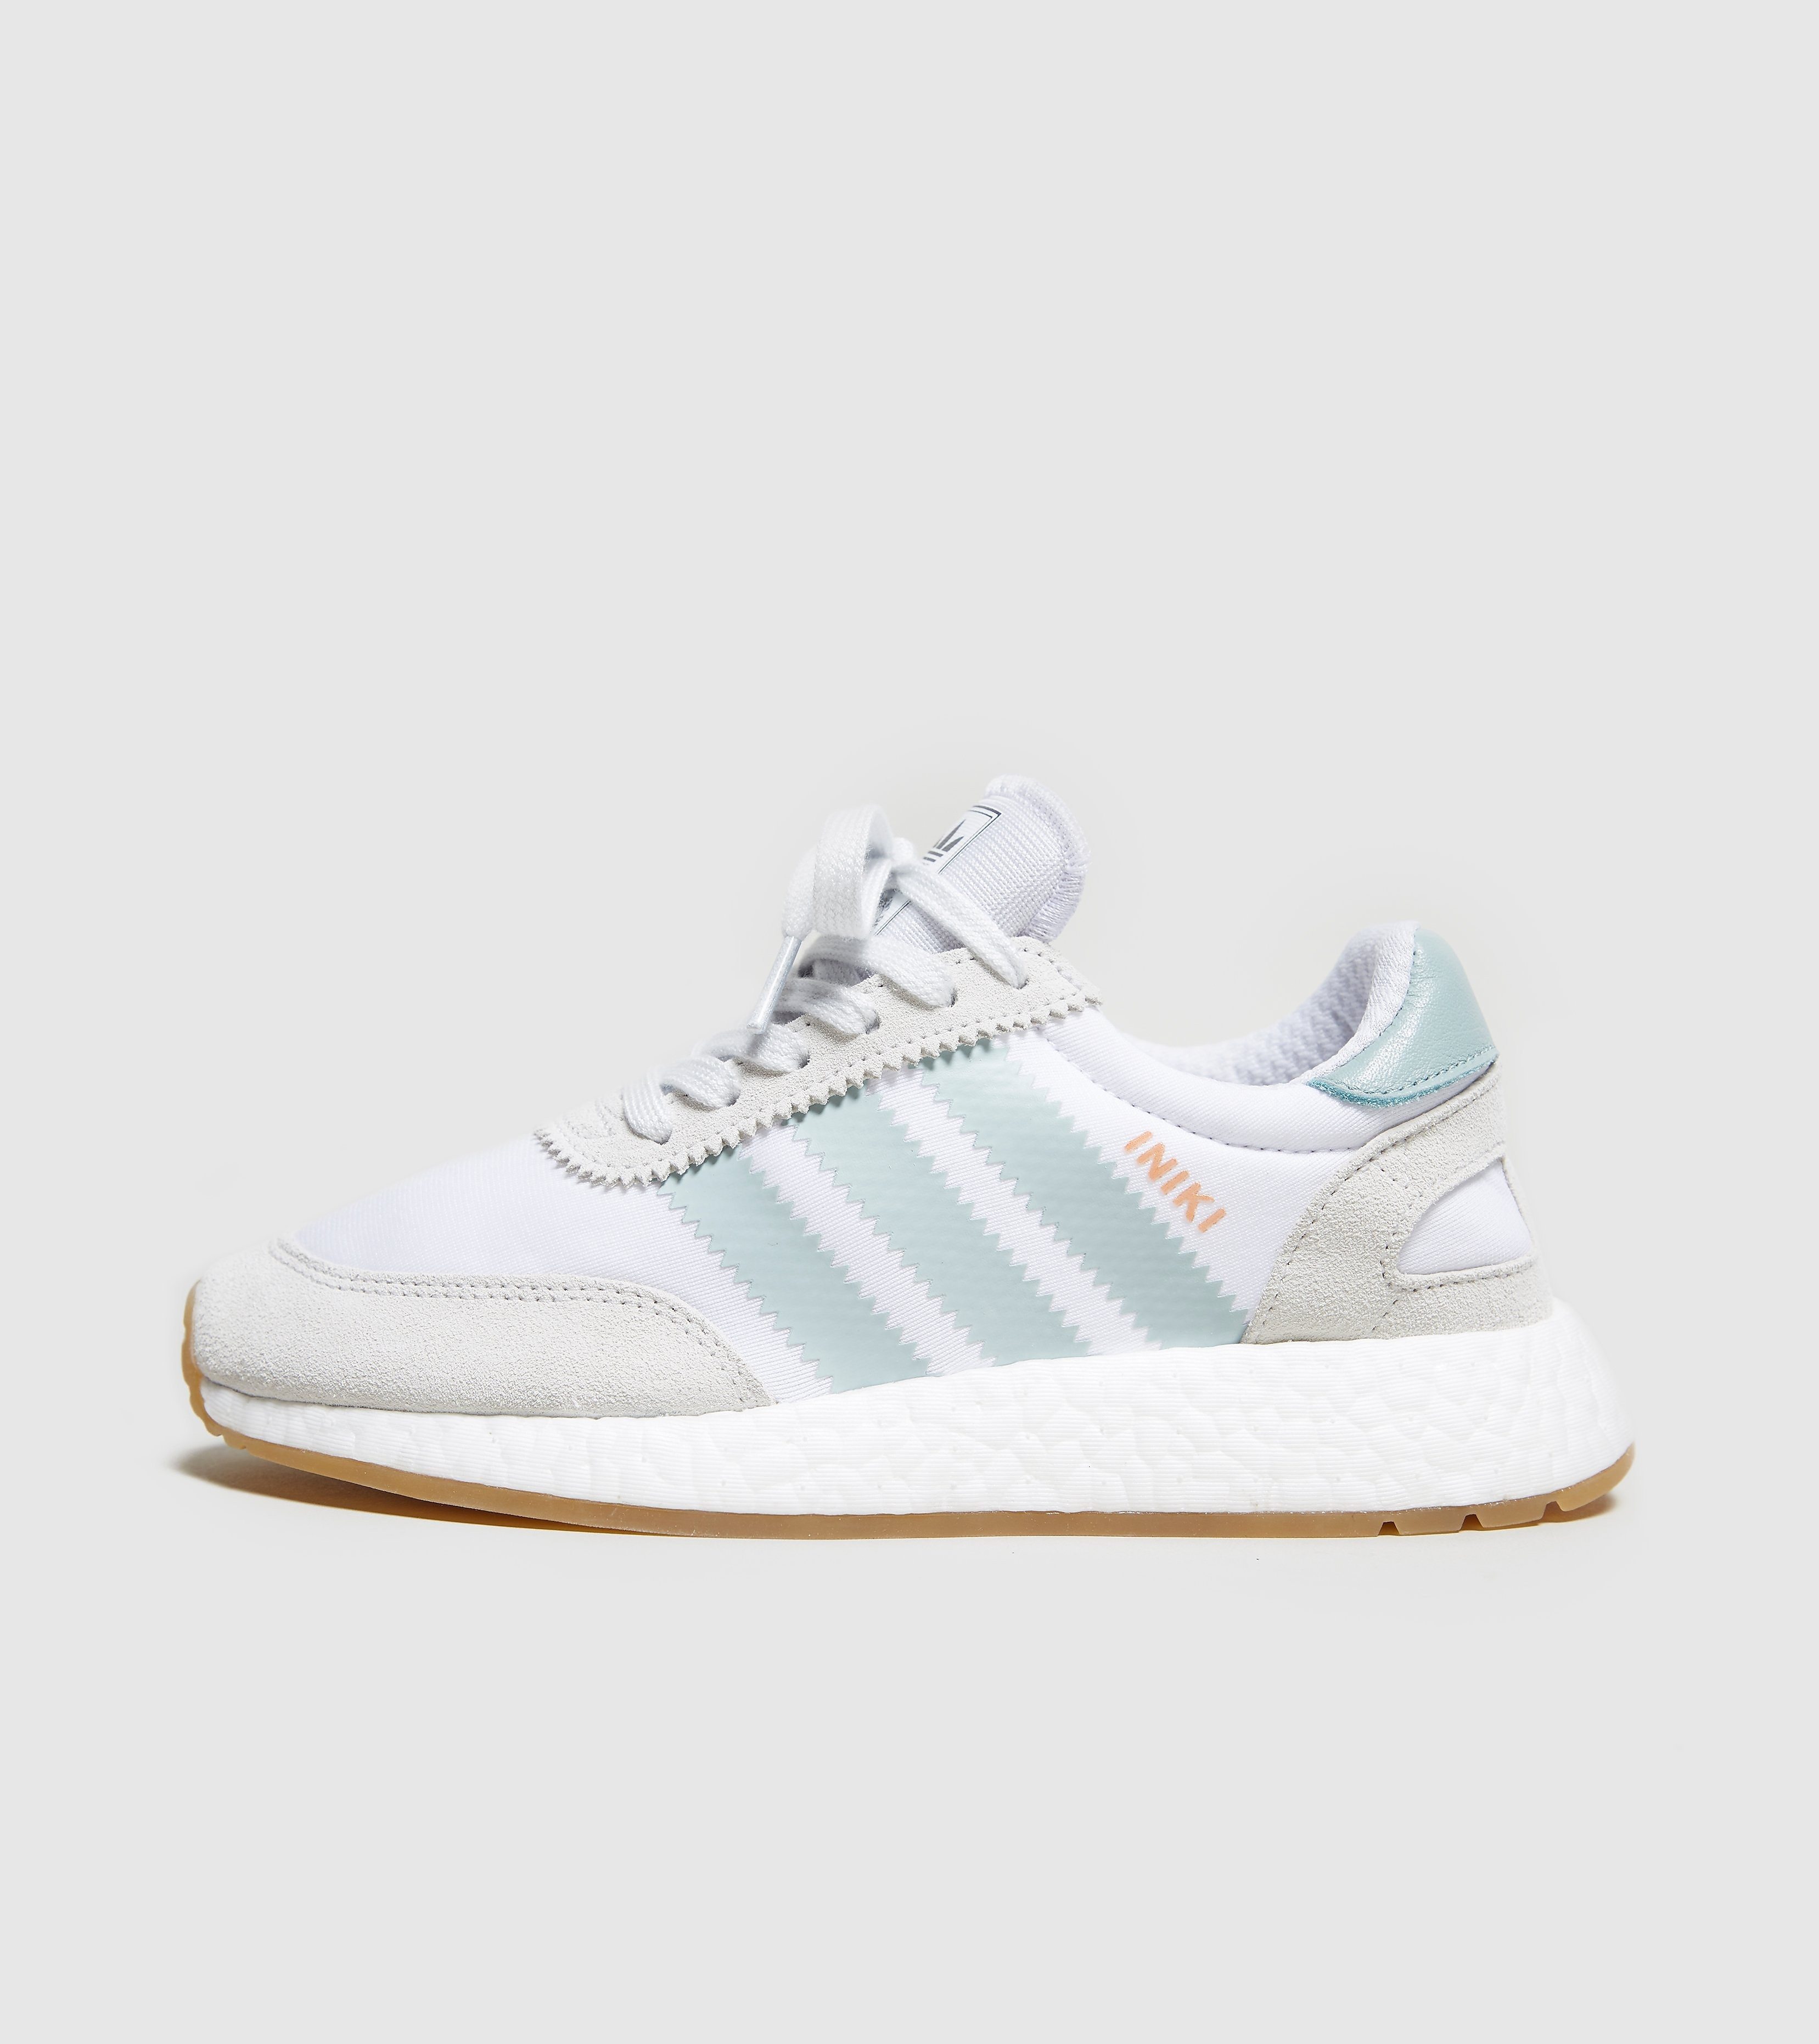 adidas Originals Iniki Runner Dam